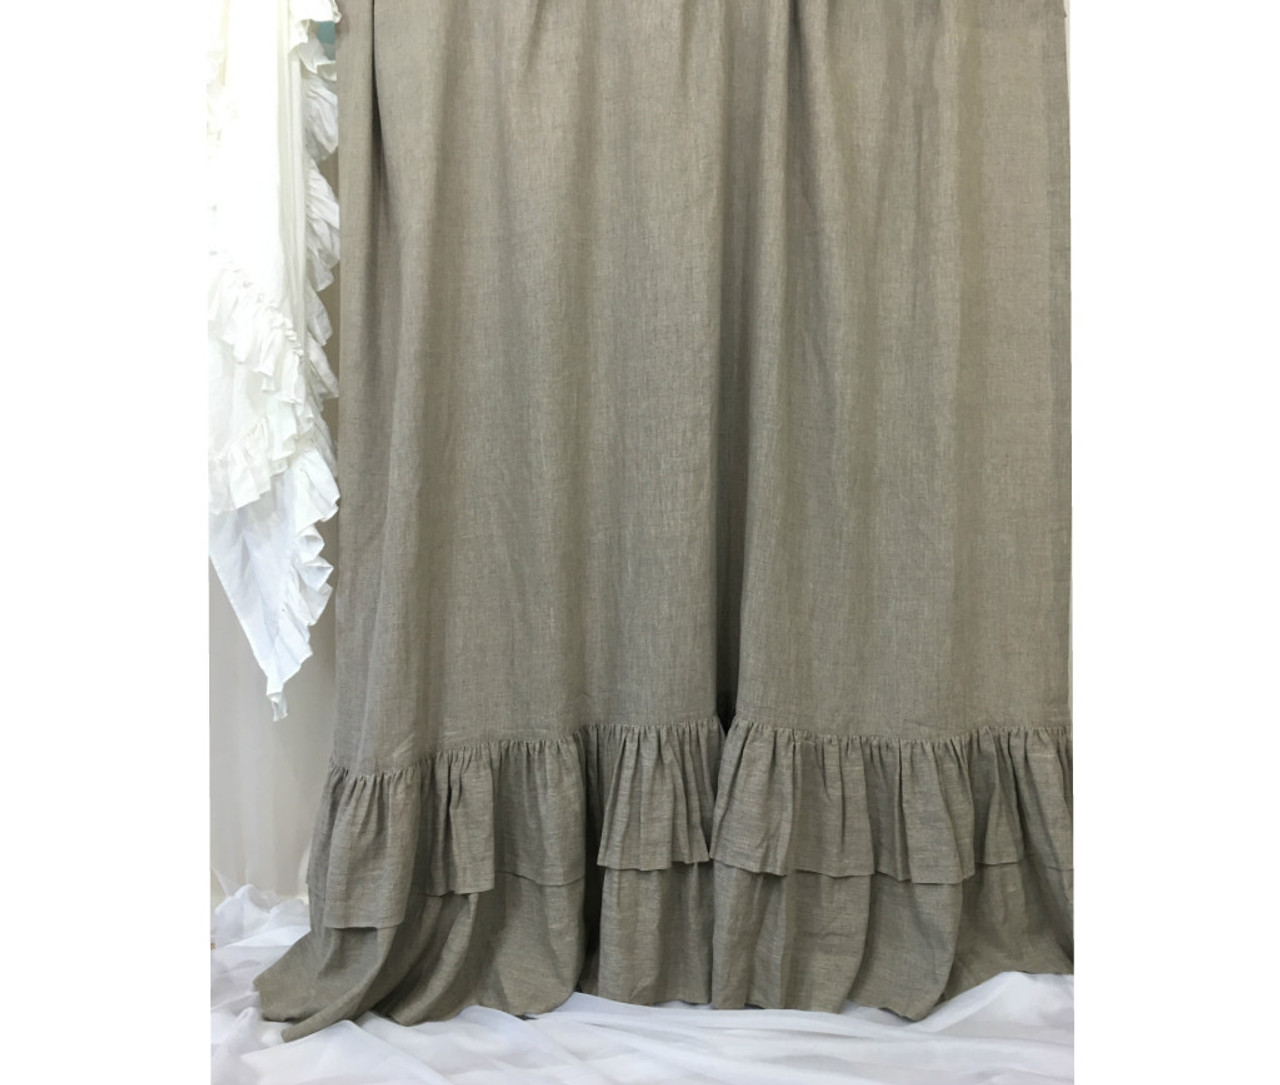 rough drapes heavy curtain orkney orkneycurtain weight shade linen white products curtains decoration premium light interior